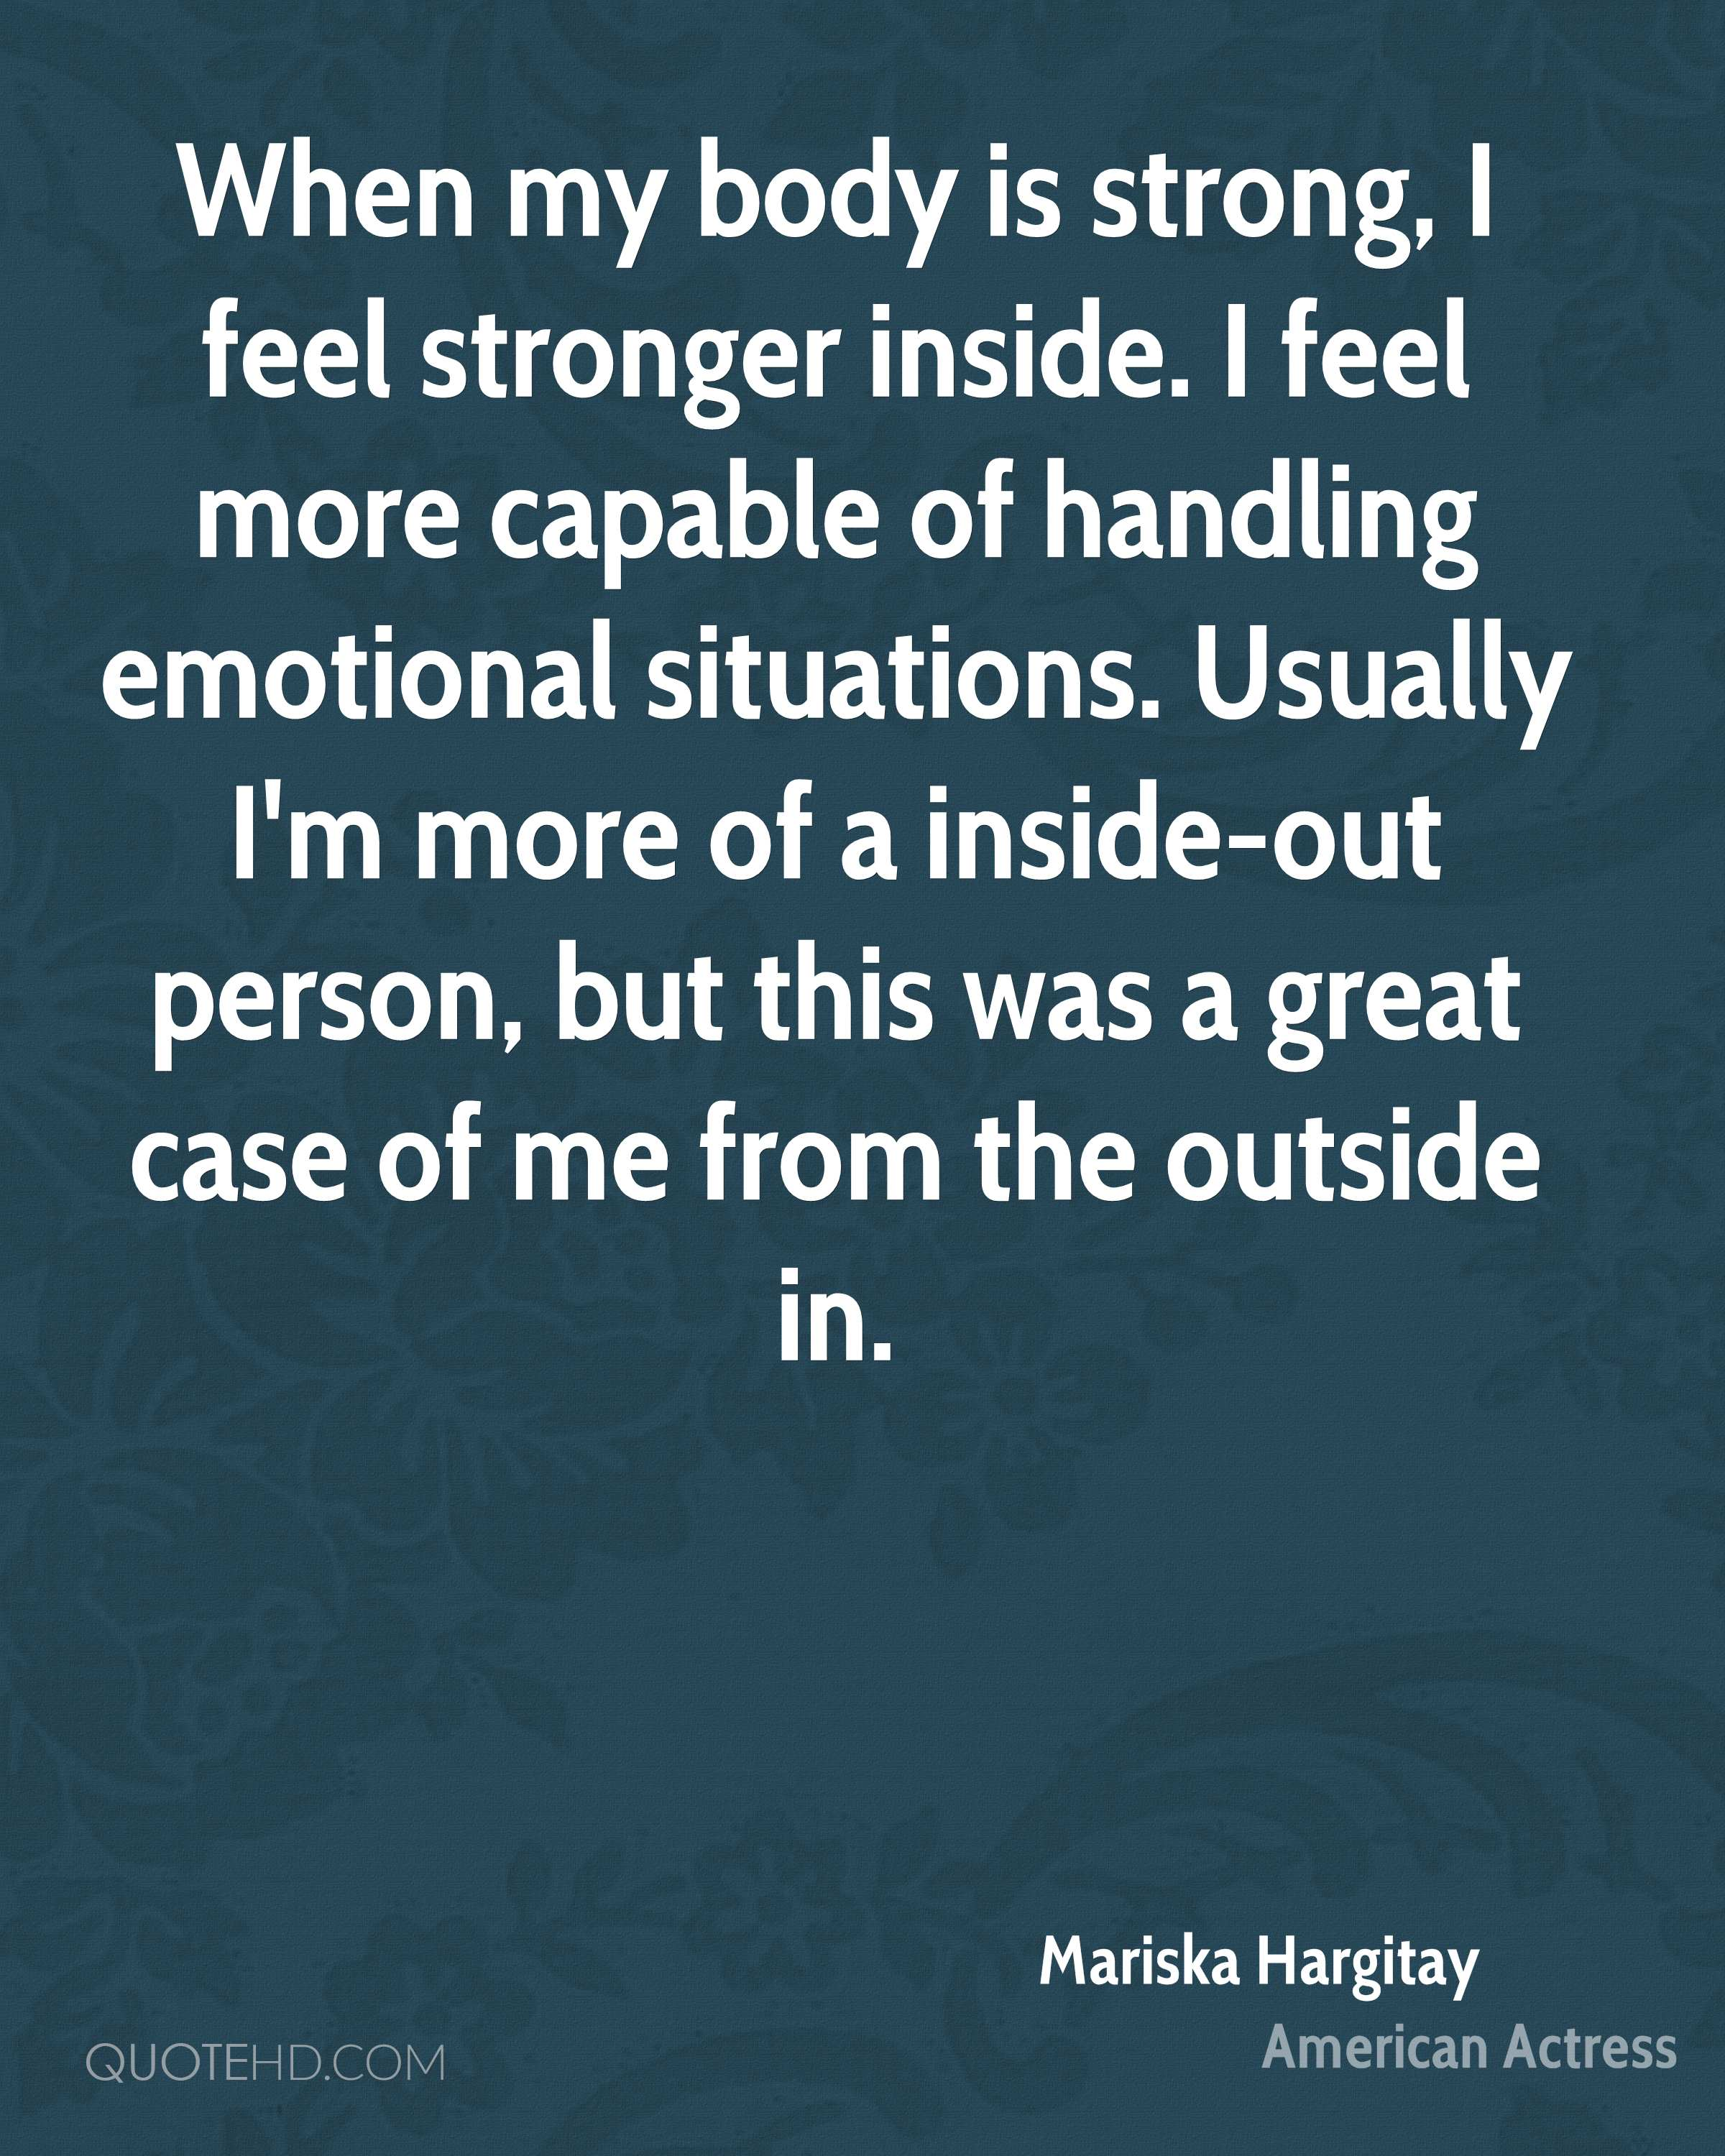 When my body is strong, I feel stronger inside. I feel more capable of handling emotional situations. Usually I'm more of a inside-out person, but this was a great case of me from the outside in.